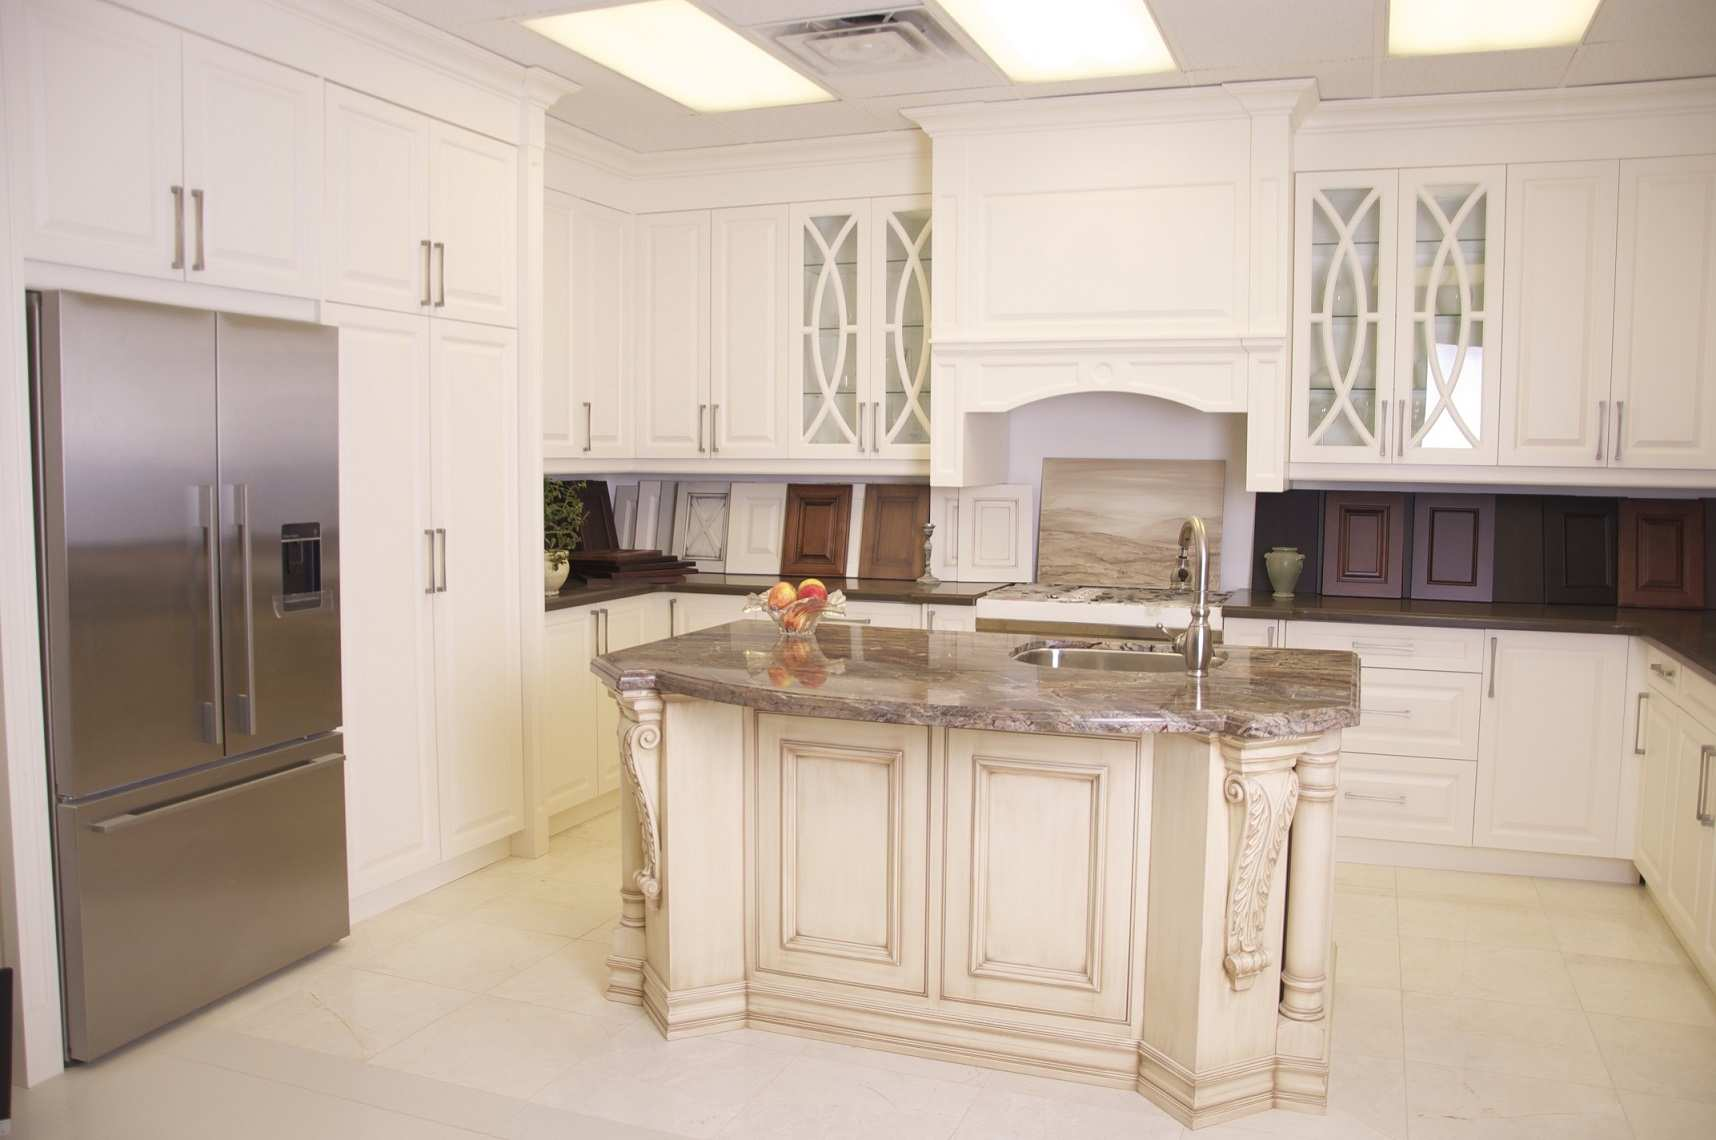 Kitchen cabinets toronto and custom cabinetry toronto - Custom cabinet doors toronto ...